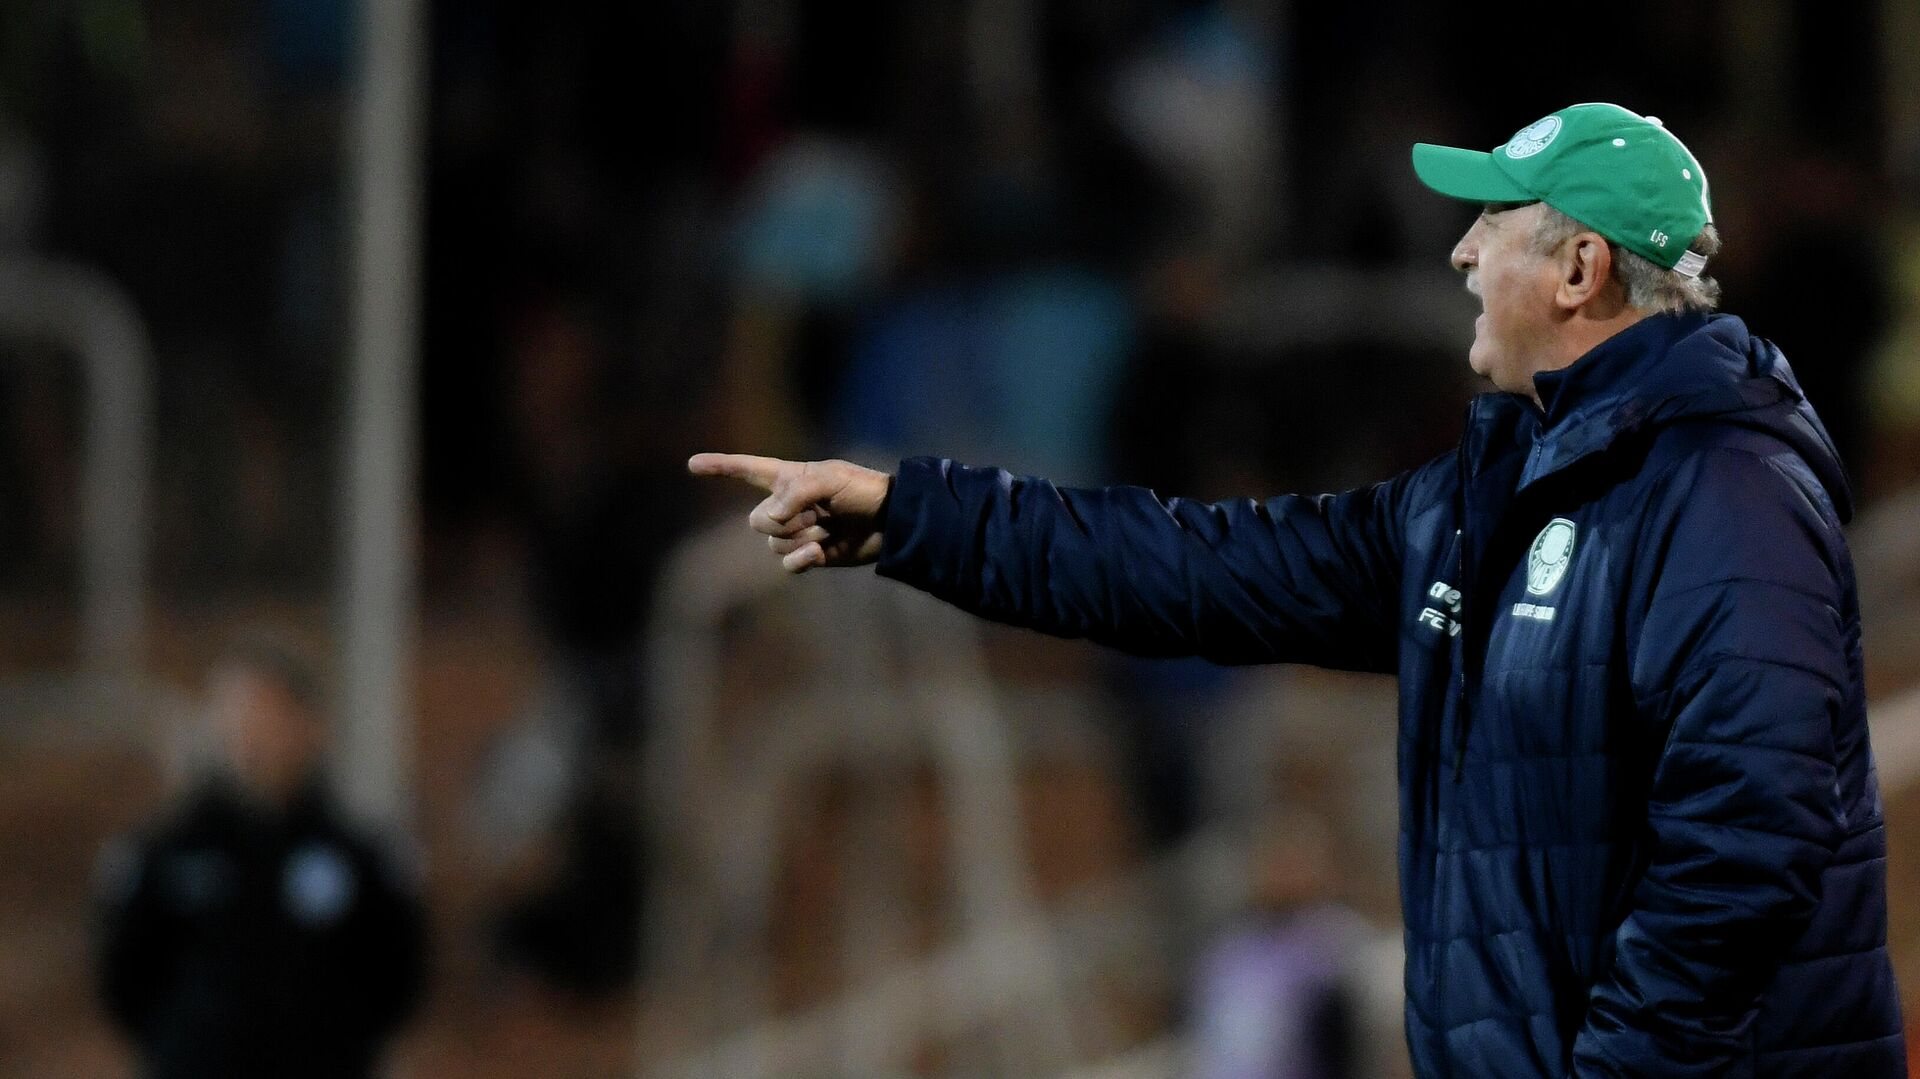 The coach of Brazilian team Palmeiras, Luiz Felipe Scolari, gives instructions during the Copa Libertadores football match against Argentina's Godoy Cruz, at the Malvinas Argentinas stadium in Mendoza, Argentina, on July 23, 2019. (Photo by Andres Larrovere / AFP) - РИА Новости, 1920, 16.10.2020